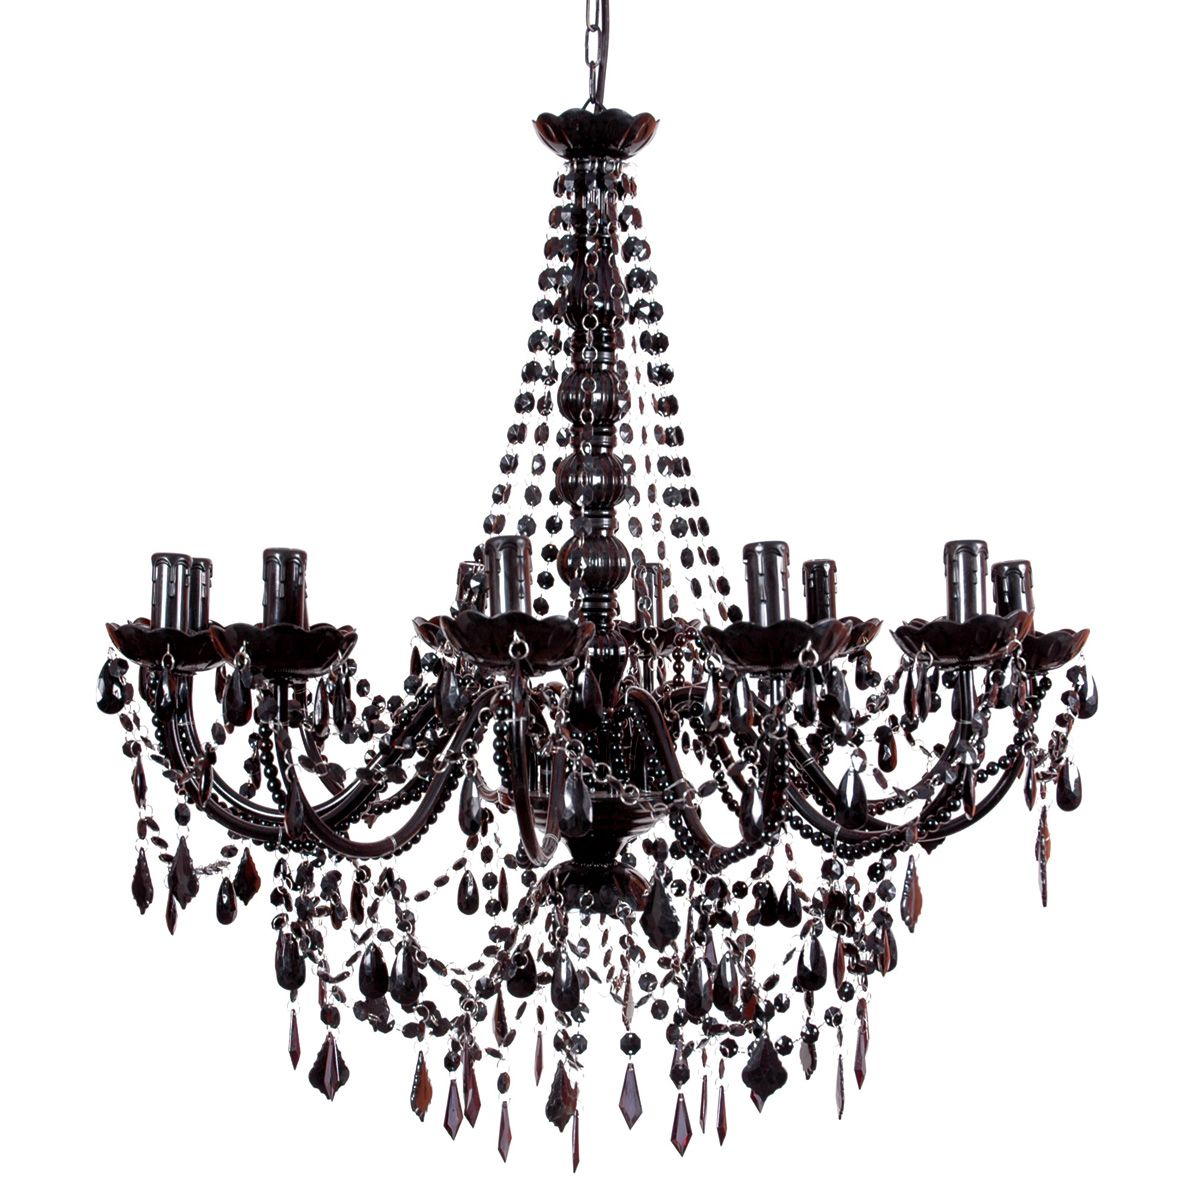 Buttress 12 Arm Black Chandelier Chandeliers Lighting French